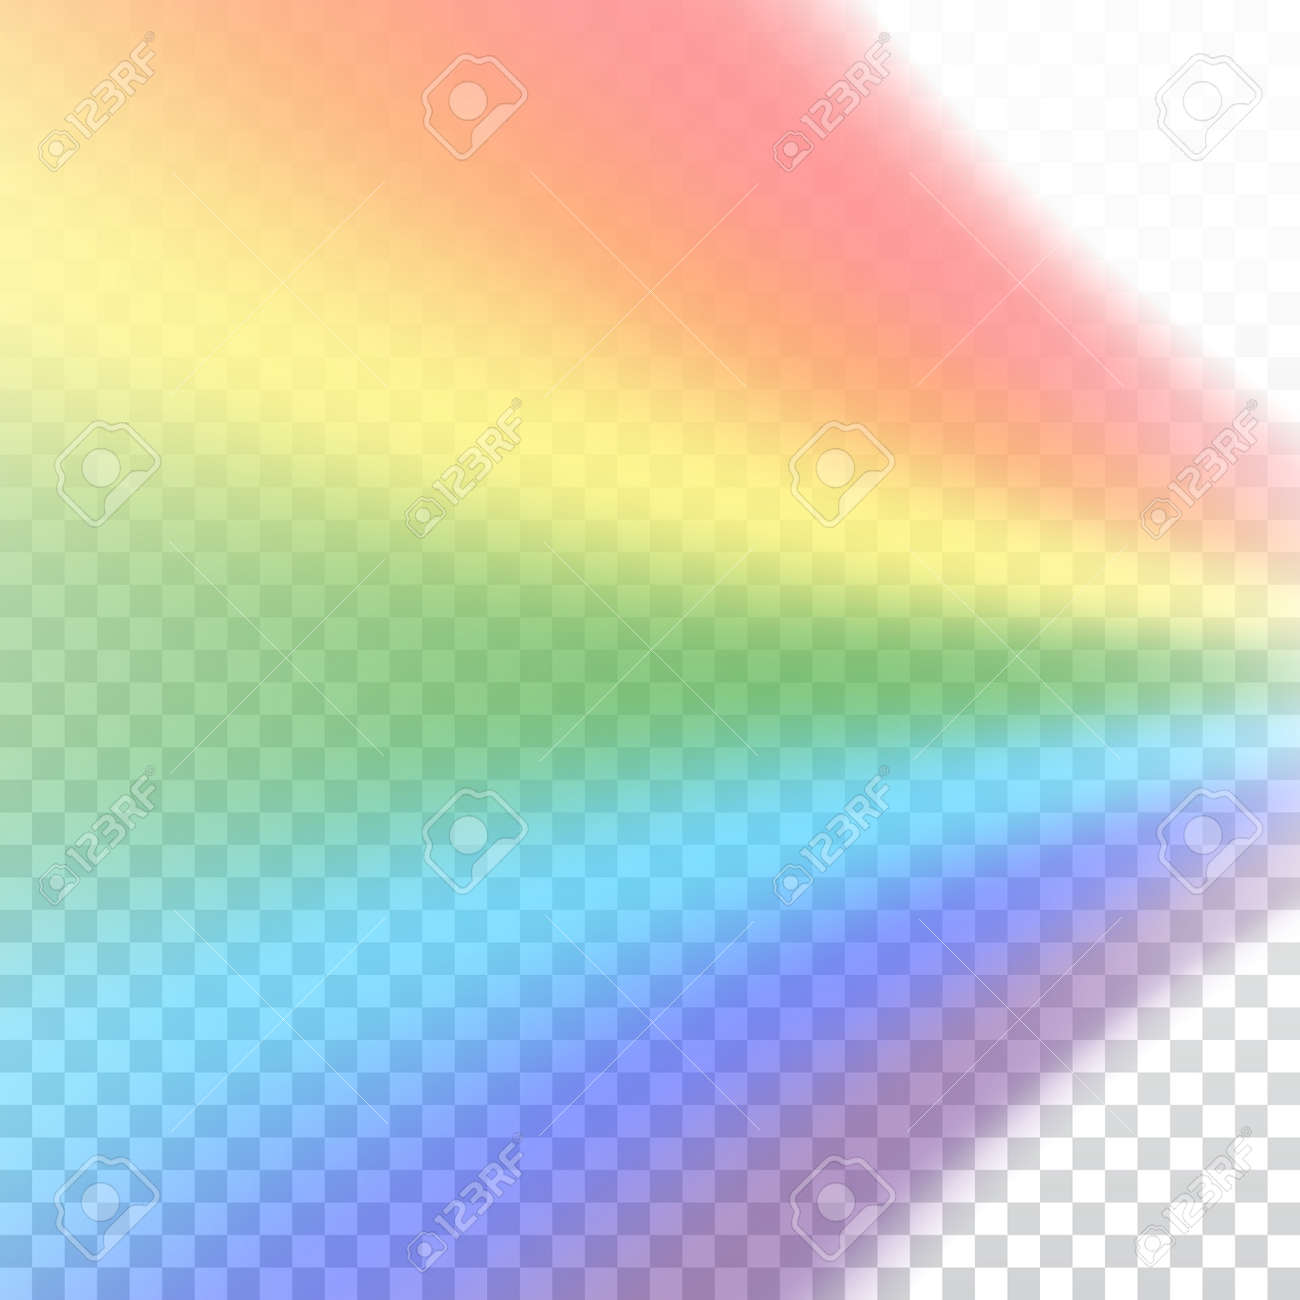 Rainbow Icon Shape Realistic Isolated On White Transparent Background Colorful Light And Bright